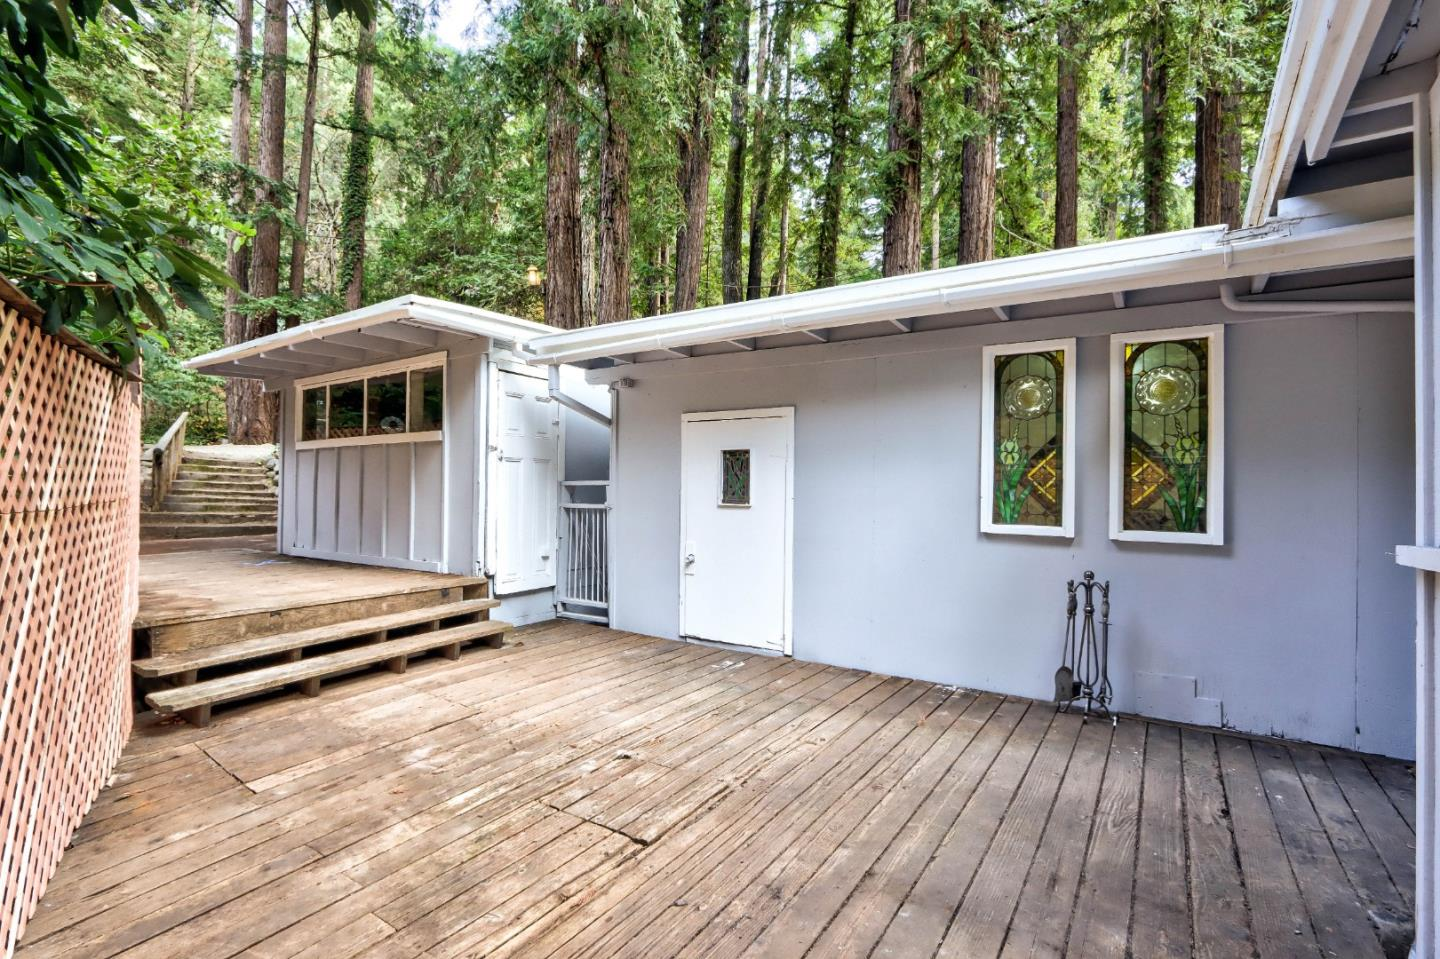 Exquisite Lompico Retreat Full of Character & Charm. Custom stained glass windows in every room fill the home w/ light & beauty, artistic details that you wont find anywhere else. This lovely home features 2 BD/1BA & 2 large workshops. Upper lot is completely flat & usable, almost ½ acre of immaculate forest surrounding the home. Inside fresh carpet, paint & recently installed linoleum flooring create a fresh start for the new owner. Large kitchen is open, w/ a separate dining area & a secret pantry accessed by grabbing a book on a shelf. Living room centers around a cozy wood burning stove & a sunroom fills the space w/ light. Main bedroom w/ direct access to bathroom, has water closet w/ a custom entrance ensuring privacy. Laundry room provides extra storage space. Just 10 minutes to downtown Felton, 25 minutes to Santa Cruz Beaches & 40 minutes over the hill to Apple, Google, Facebook & more! Don't miss this one of a kind opportunity, you have never seen anything like this home.